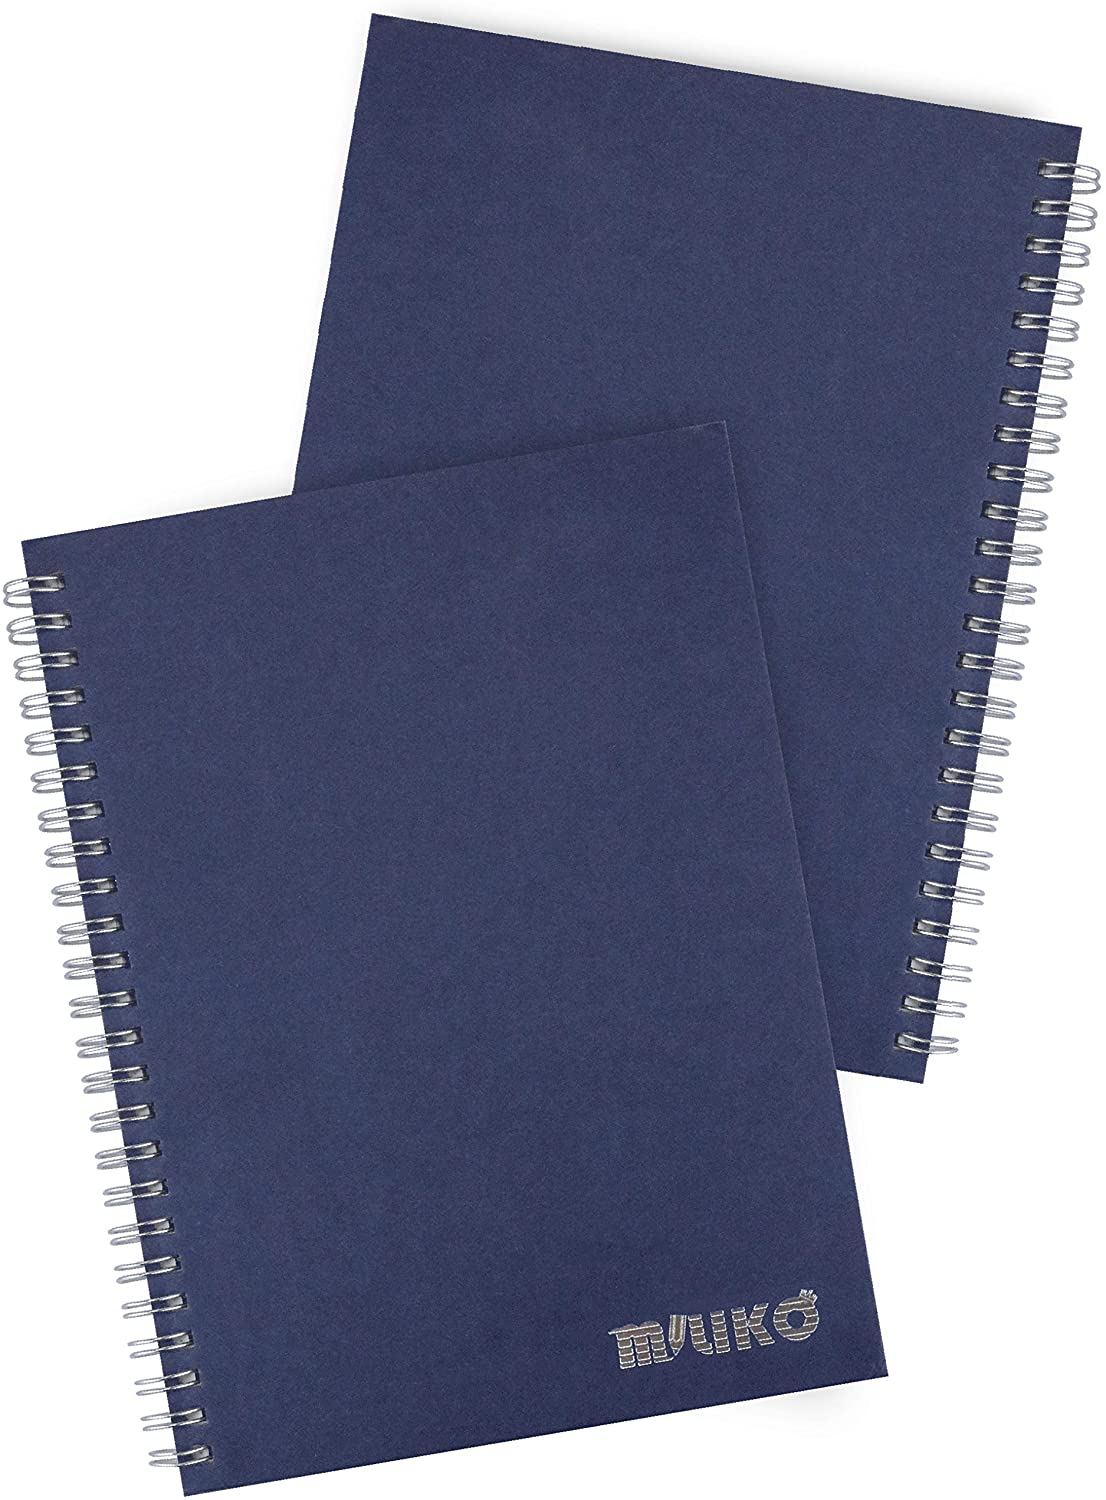 Miliko A5 Size Kraft Paper Hardcover Ruled Wirebound/Spiral Notebook/Journal-2 Notebooks Per Pack-70 Sheets (140 Pages)-8.27 Inches x 5.67 Inches(Silver Binding Rings, Blue Ruled)